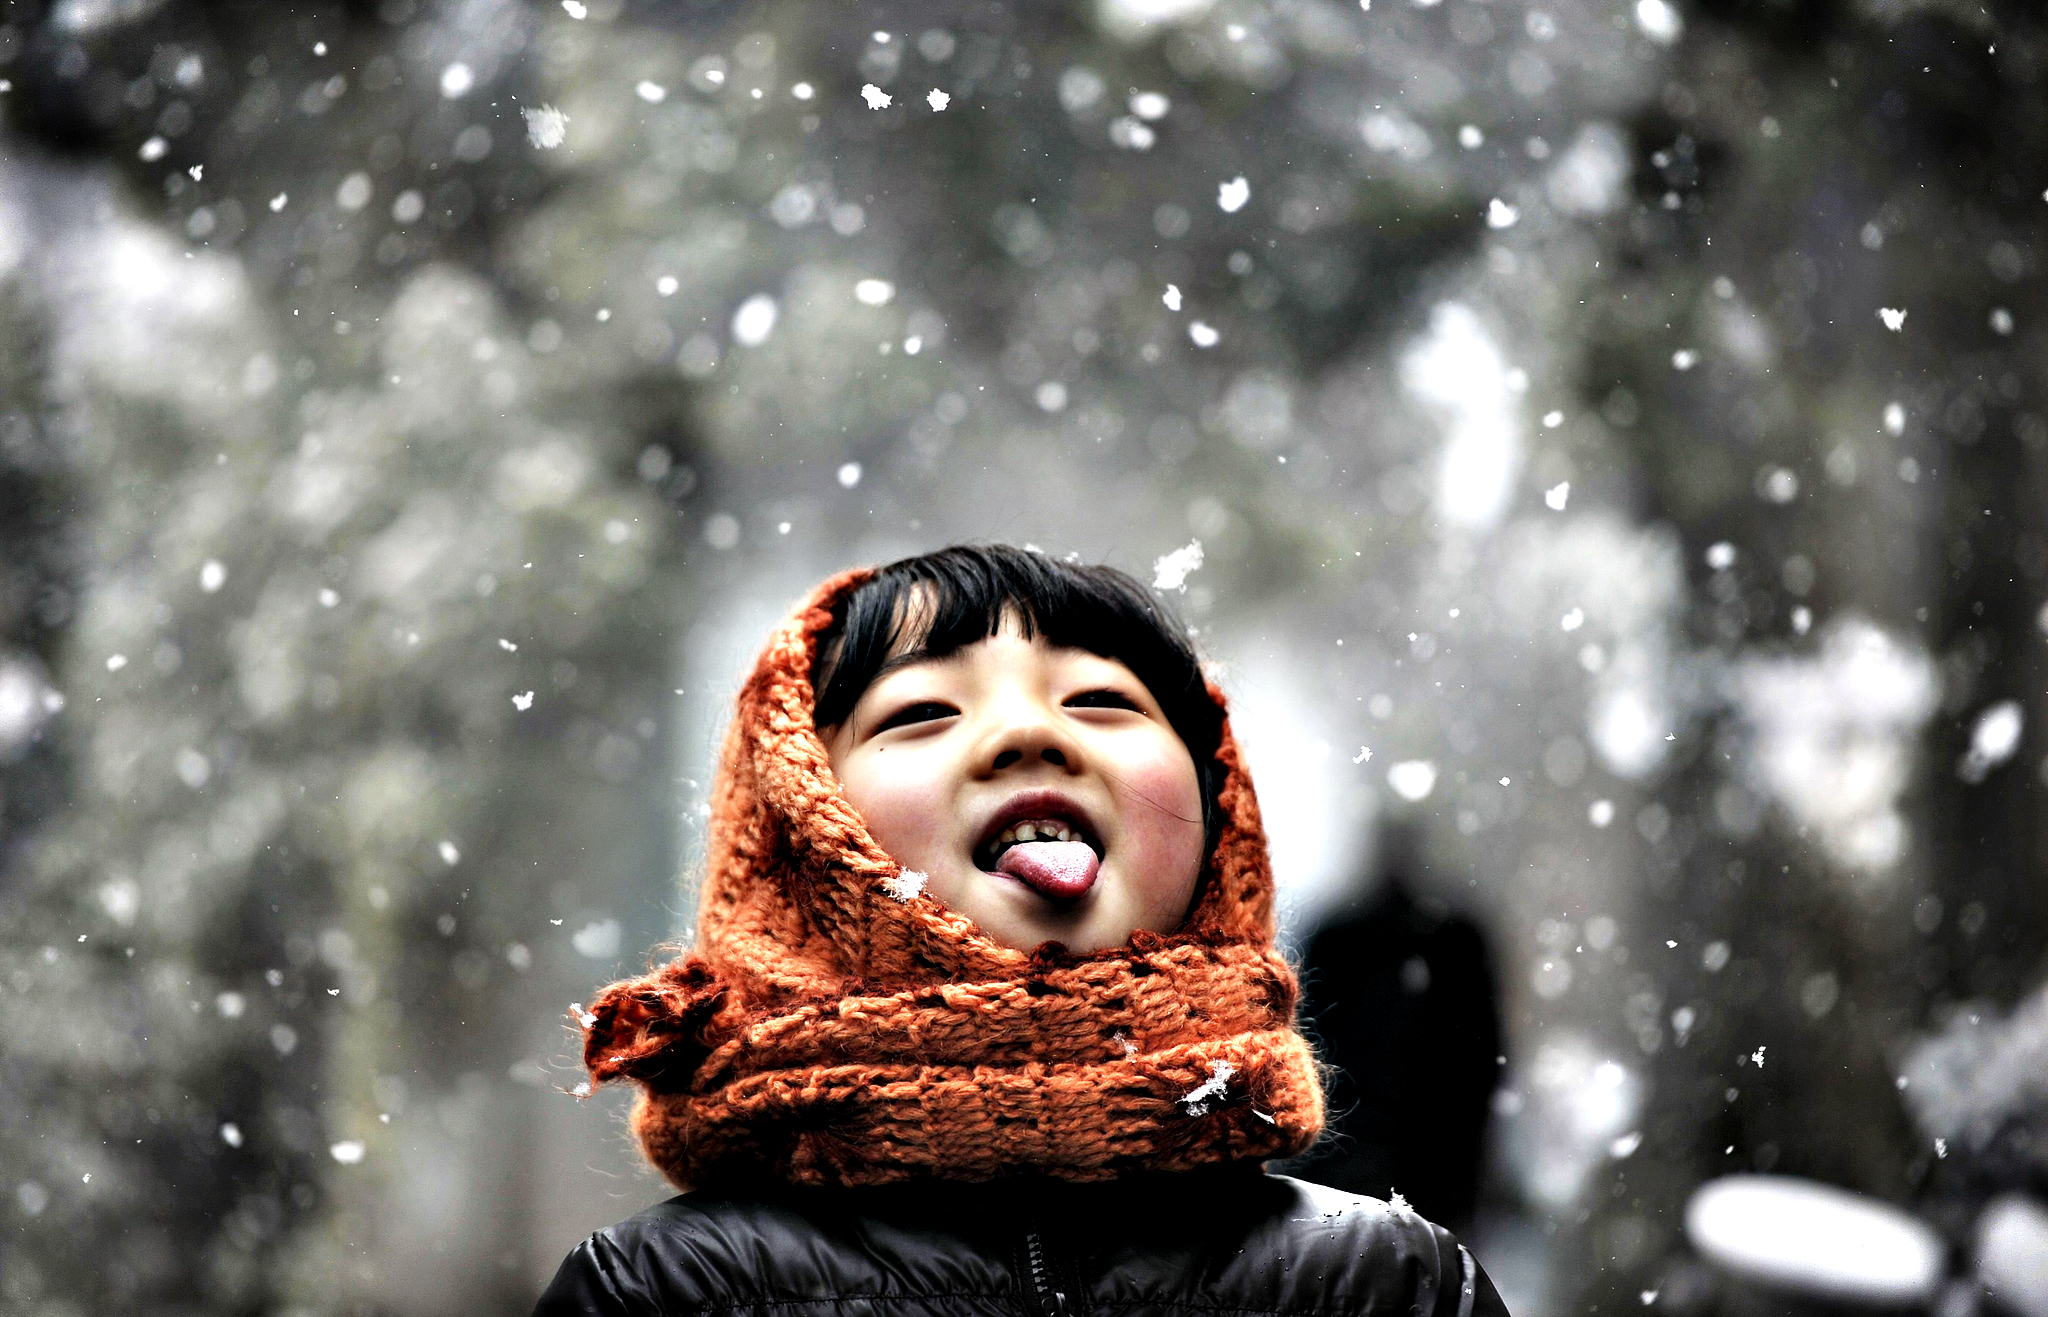 A girl sticks out her tongue during snowfalls on a street in Hefei, Anhui province February 13, 2014.